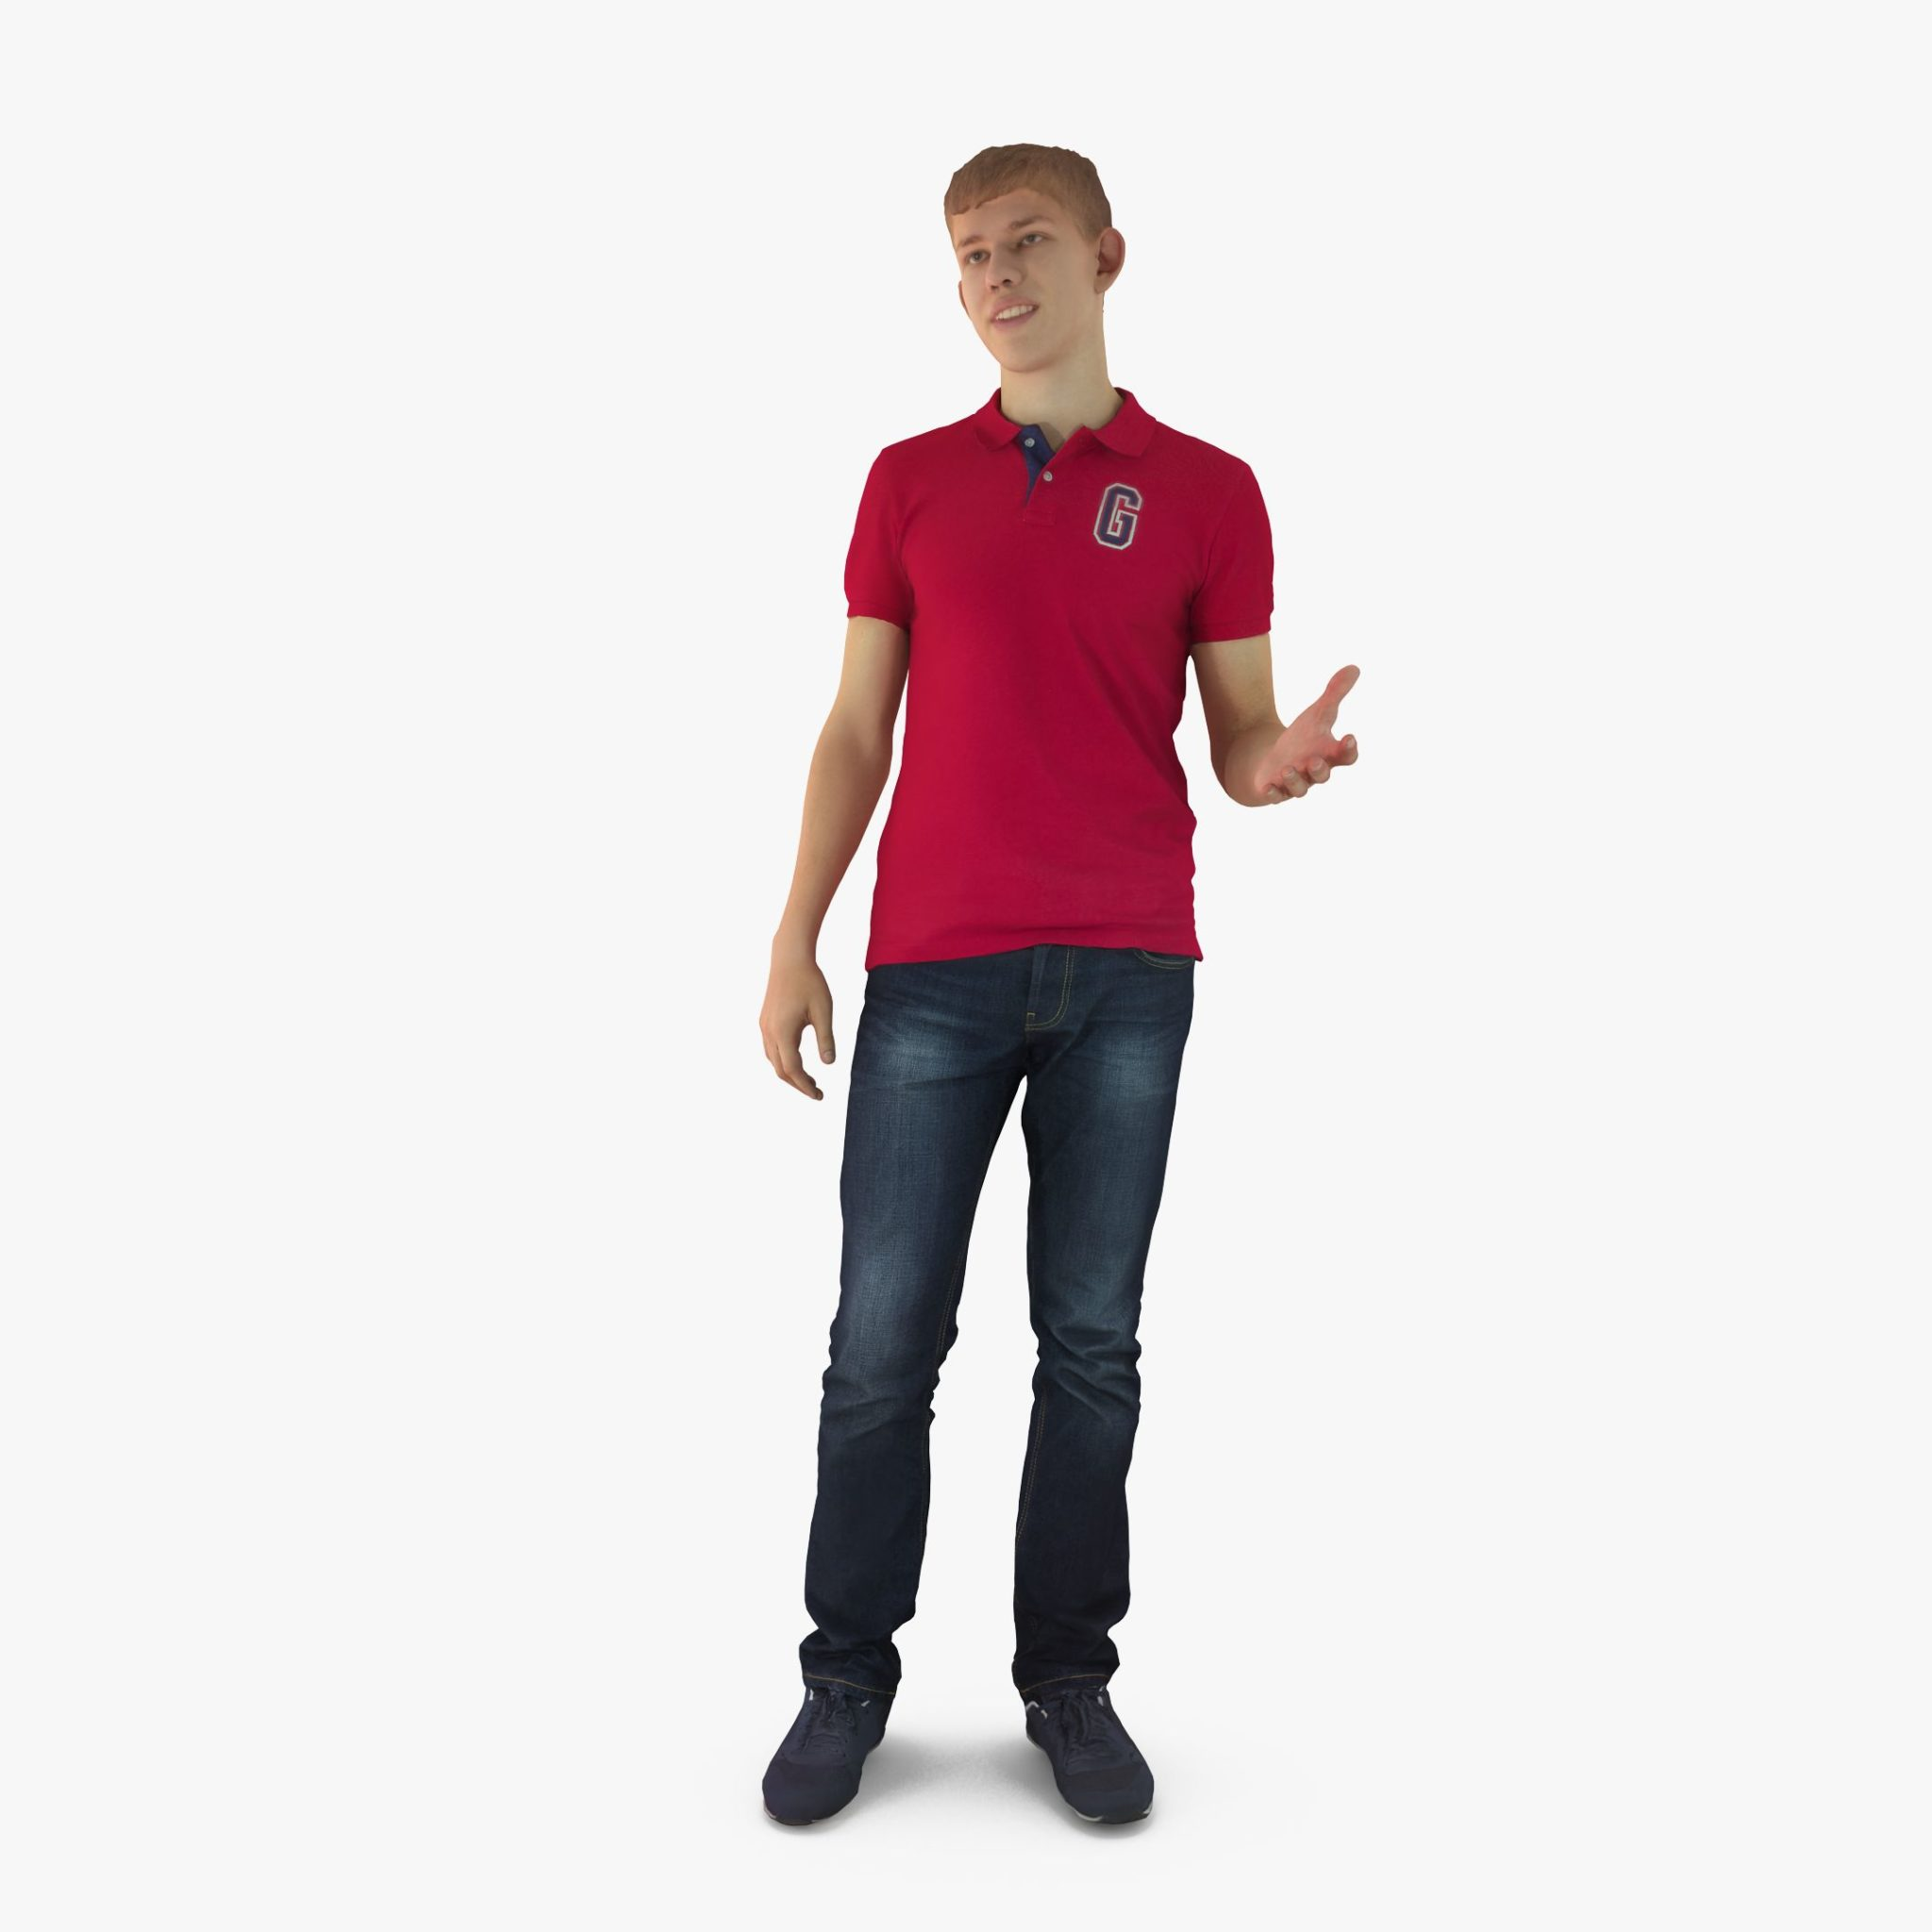 Casual Male Speaking 3D Model | 3DTree Scanning Studio